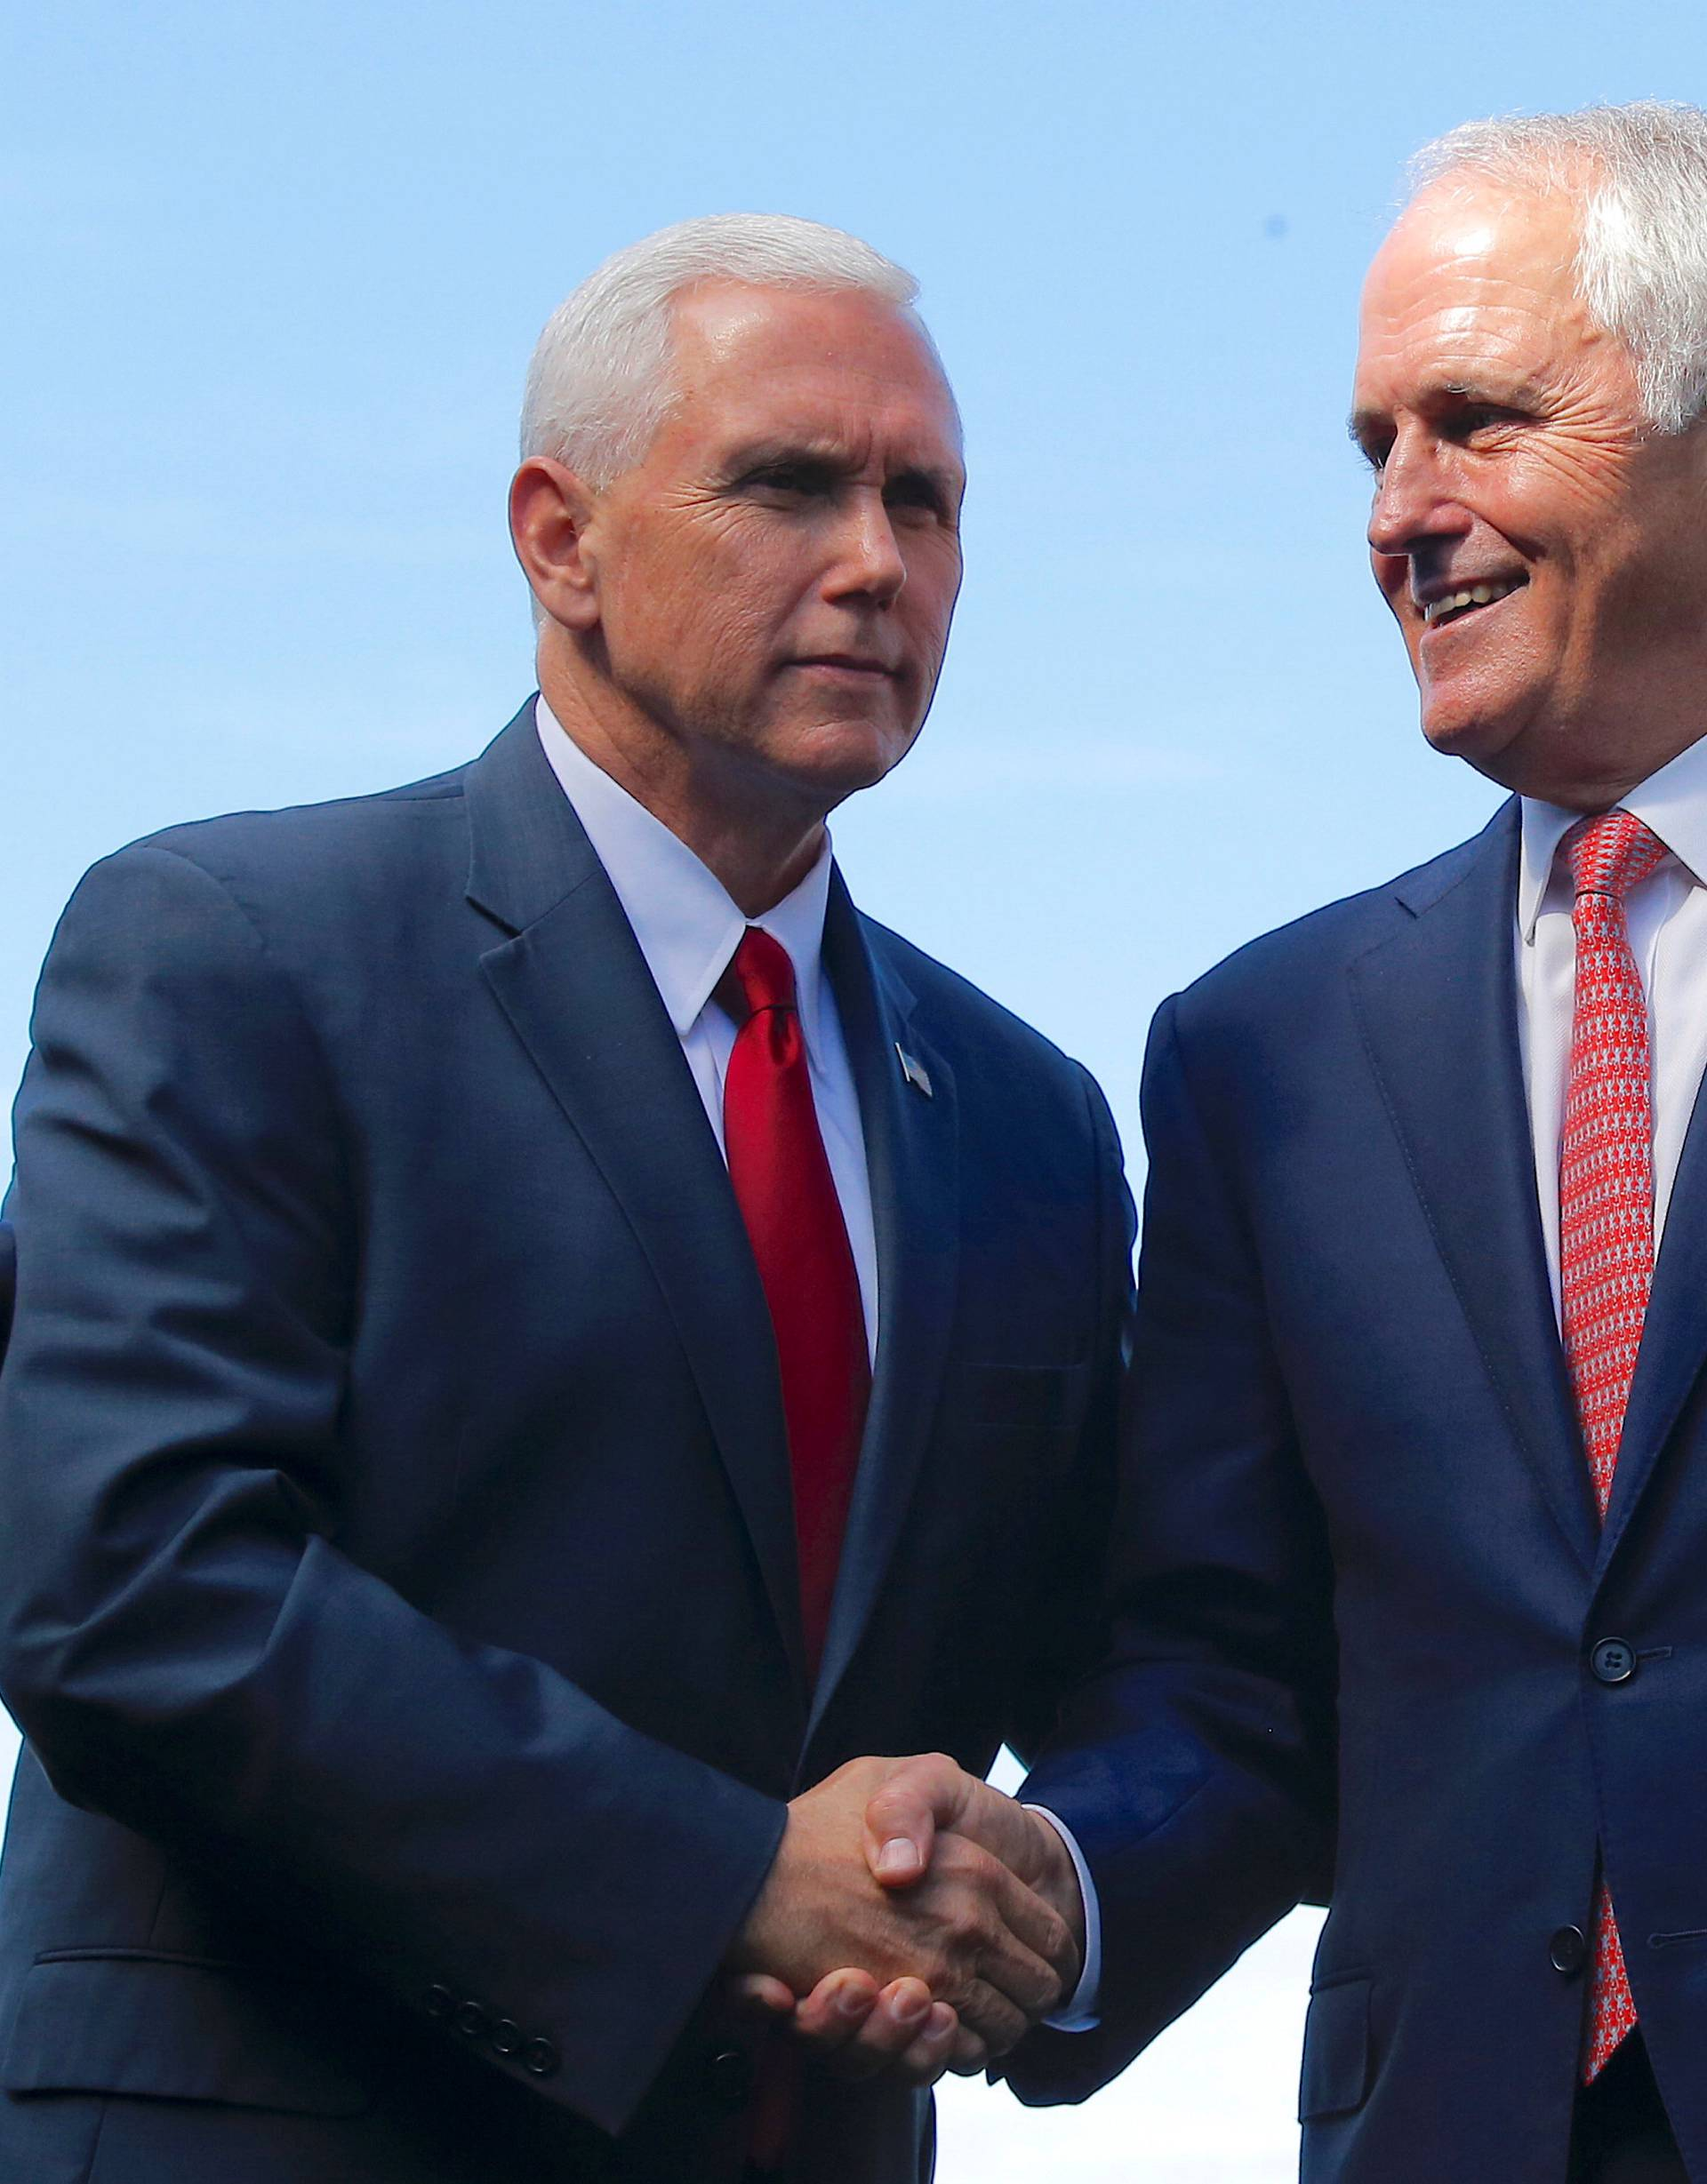 Pence shakes hands with Turnbull after a media conference at Admiralty House in Sydney